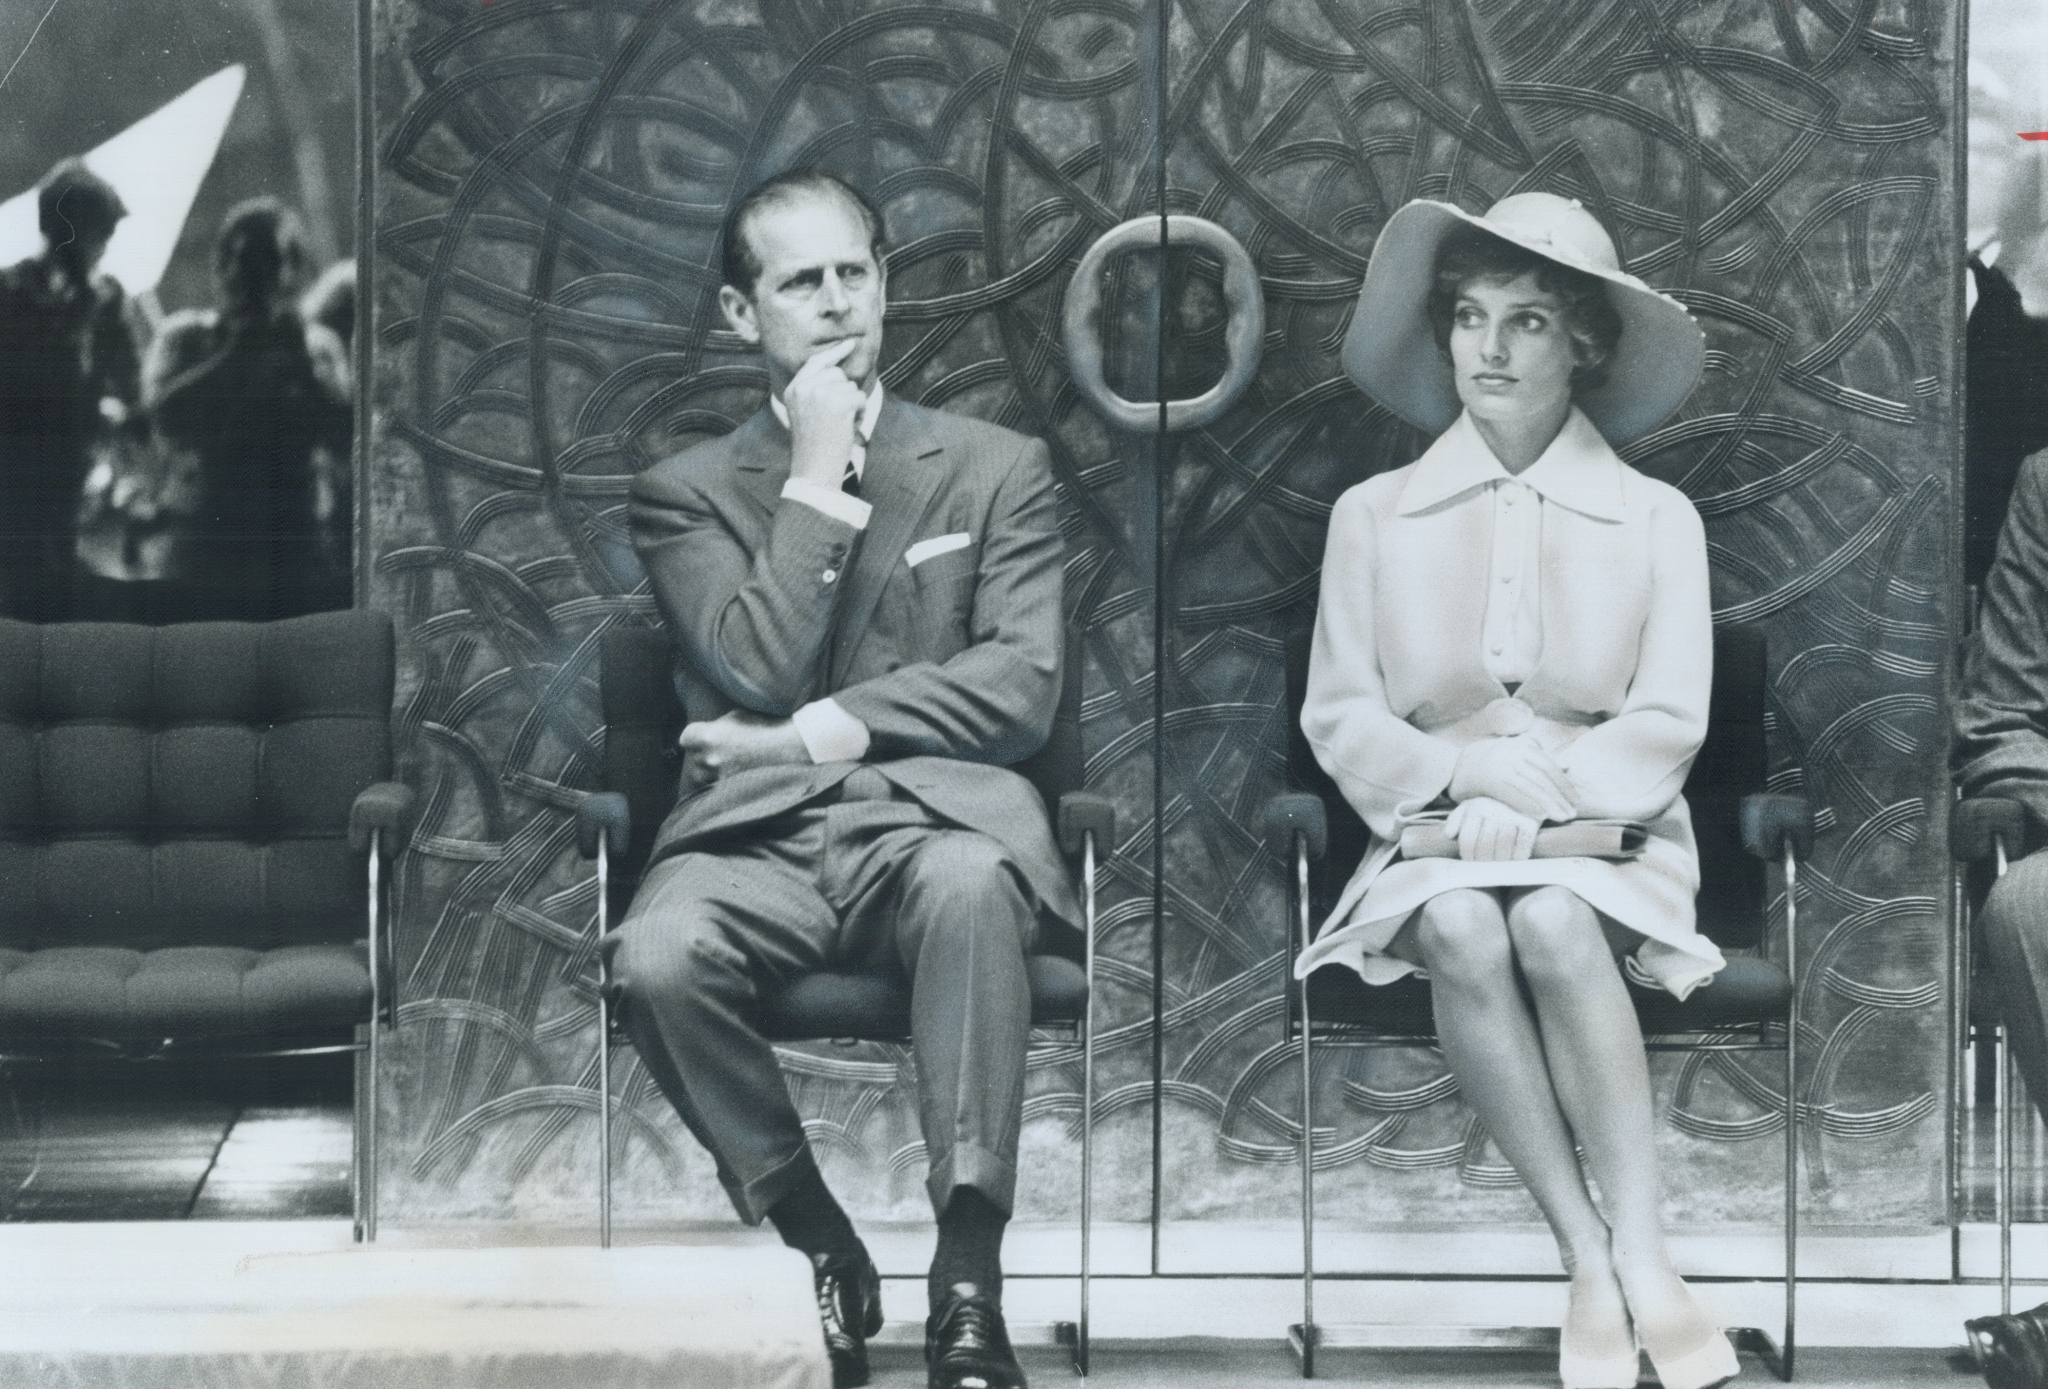 Prince Philip and Margaret Trudeau; wife of the Prime Minister, listen to the Queen as she officially opens the Lester B. Pearson external affairs building in Ottawa in 1973.